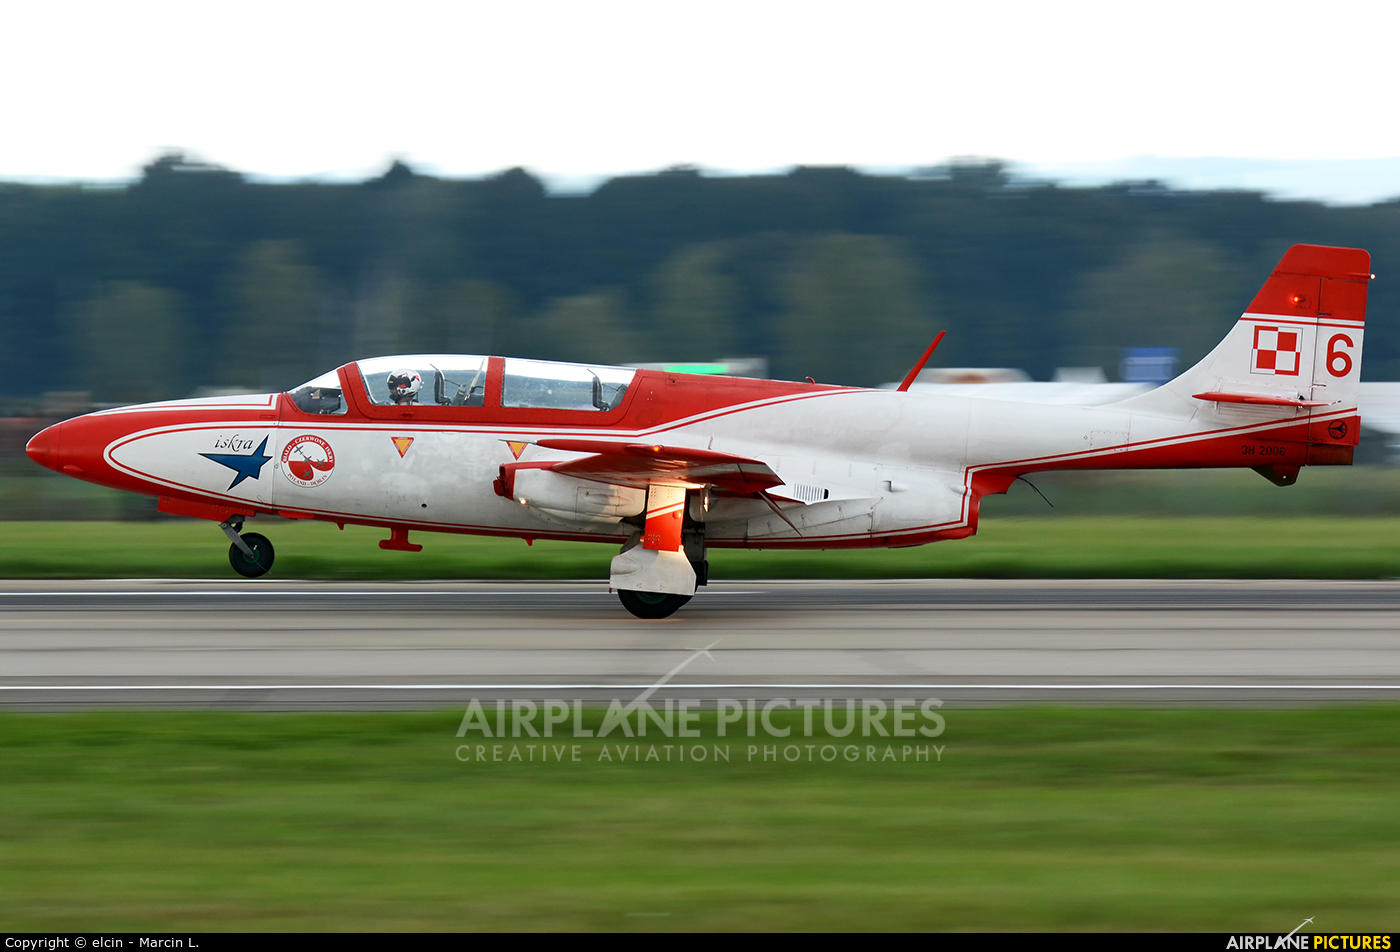 Poland - Air Force: White & Red Iskras 3H-2006 aircraft at Ostrava Mošnov